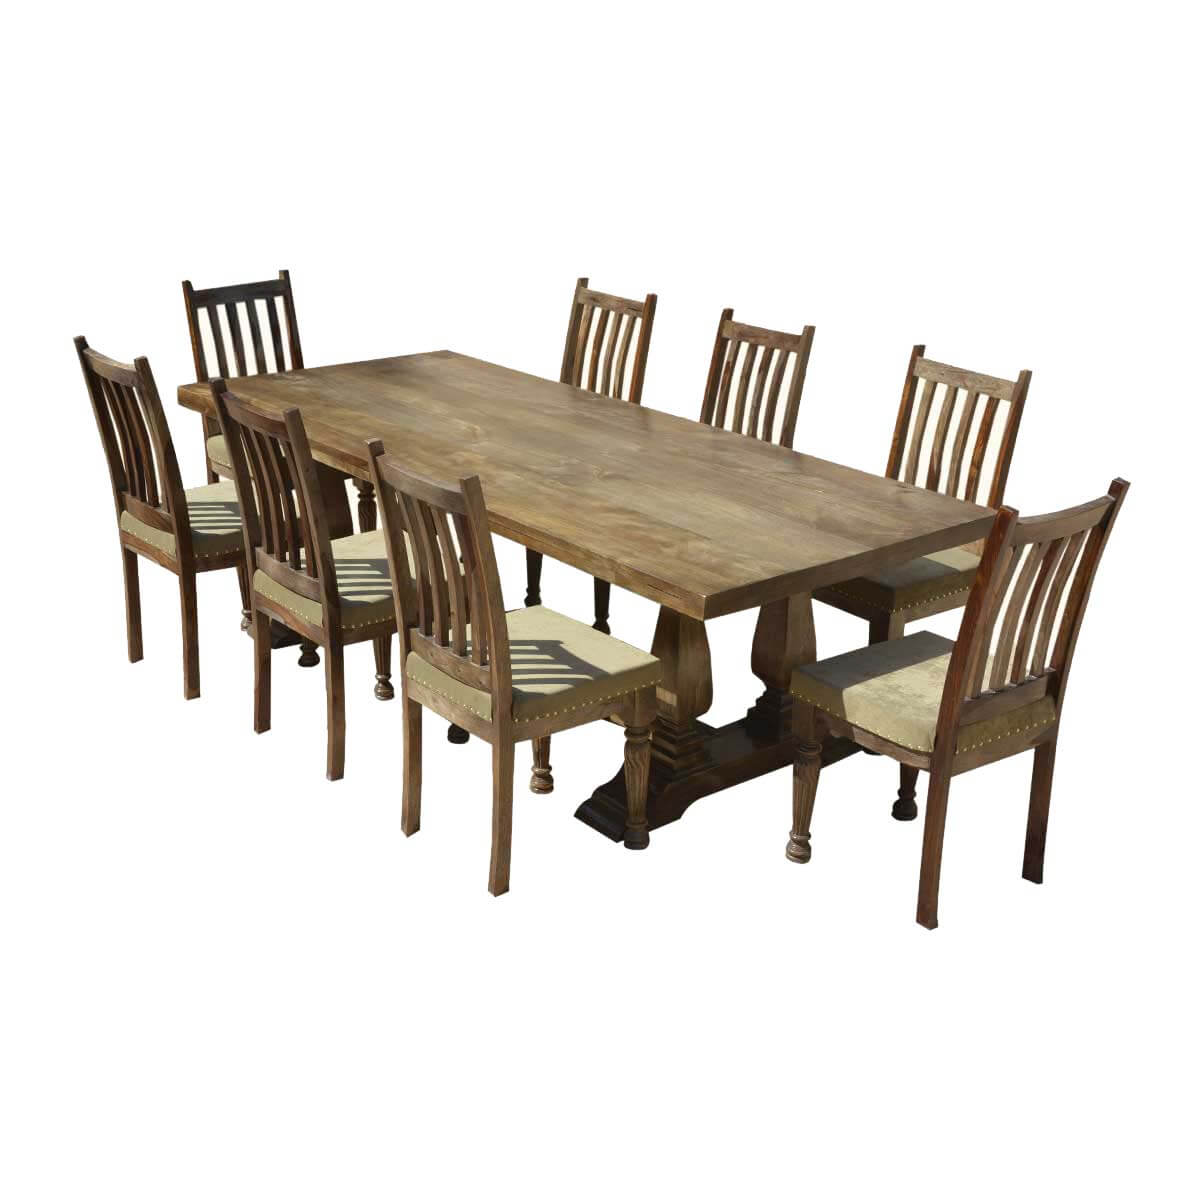 Rustic Wooden Dining Table And Chairs